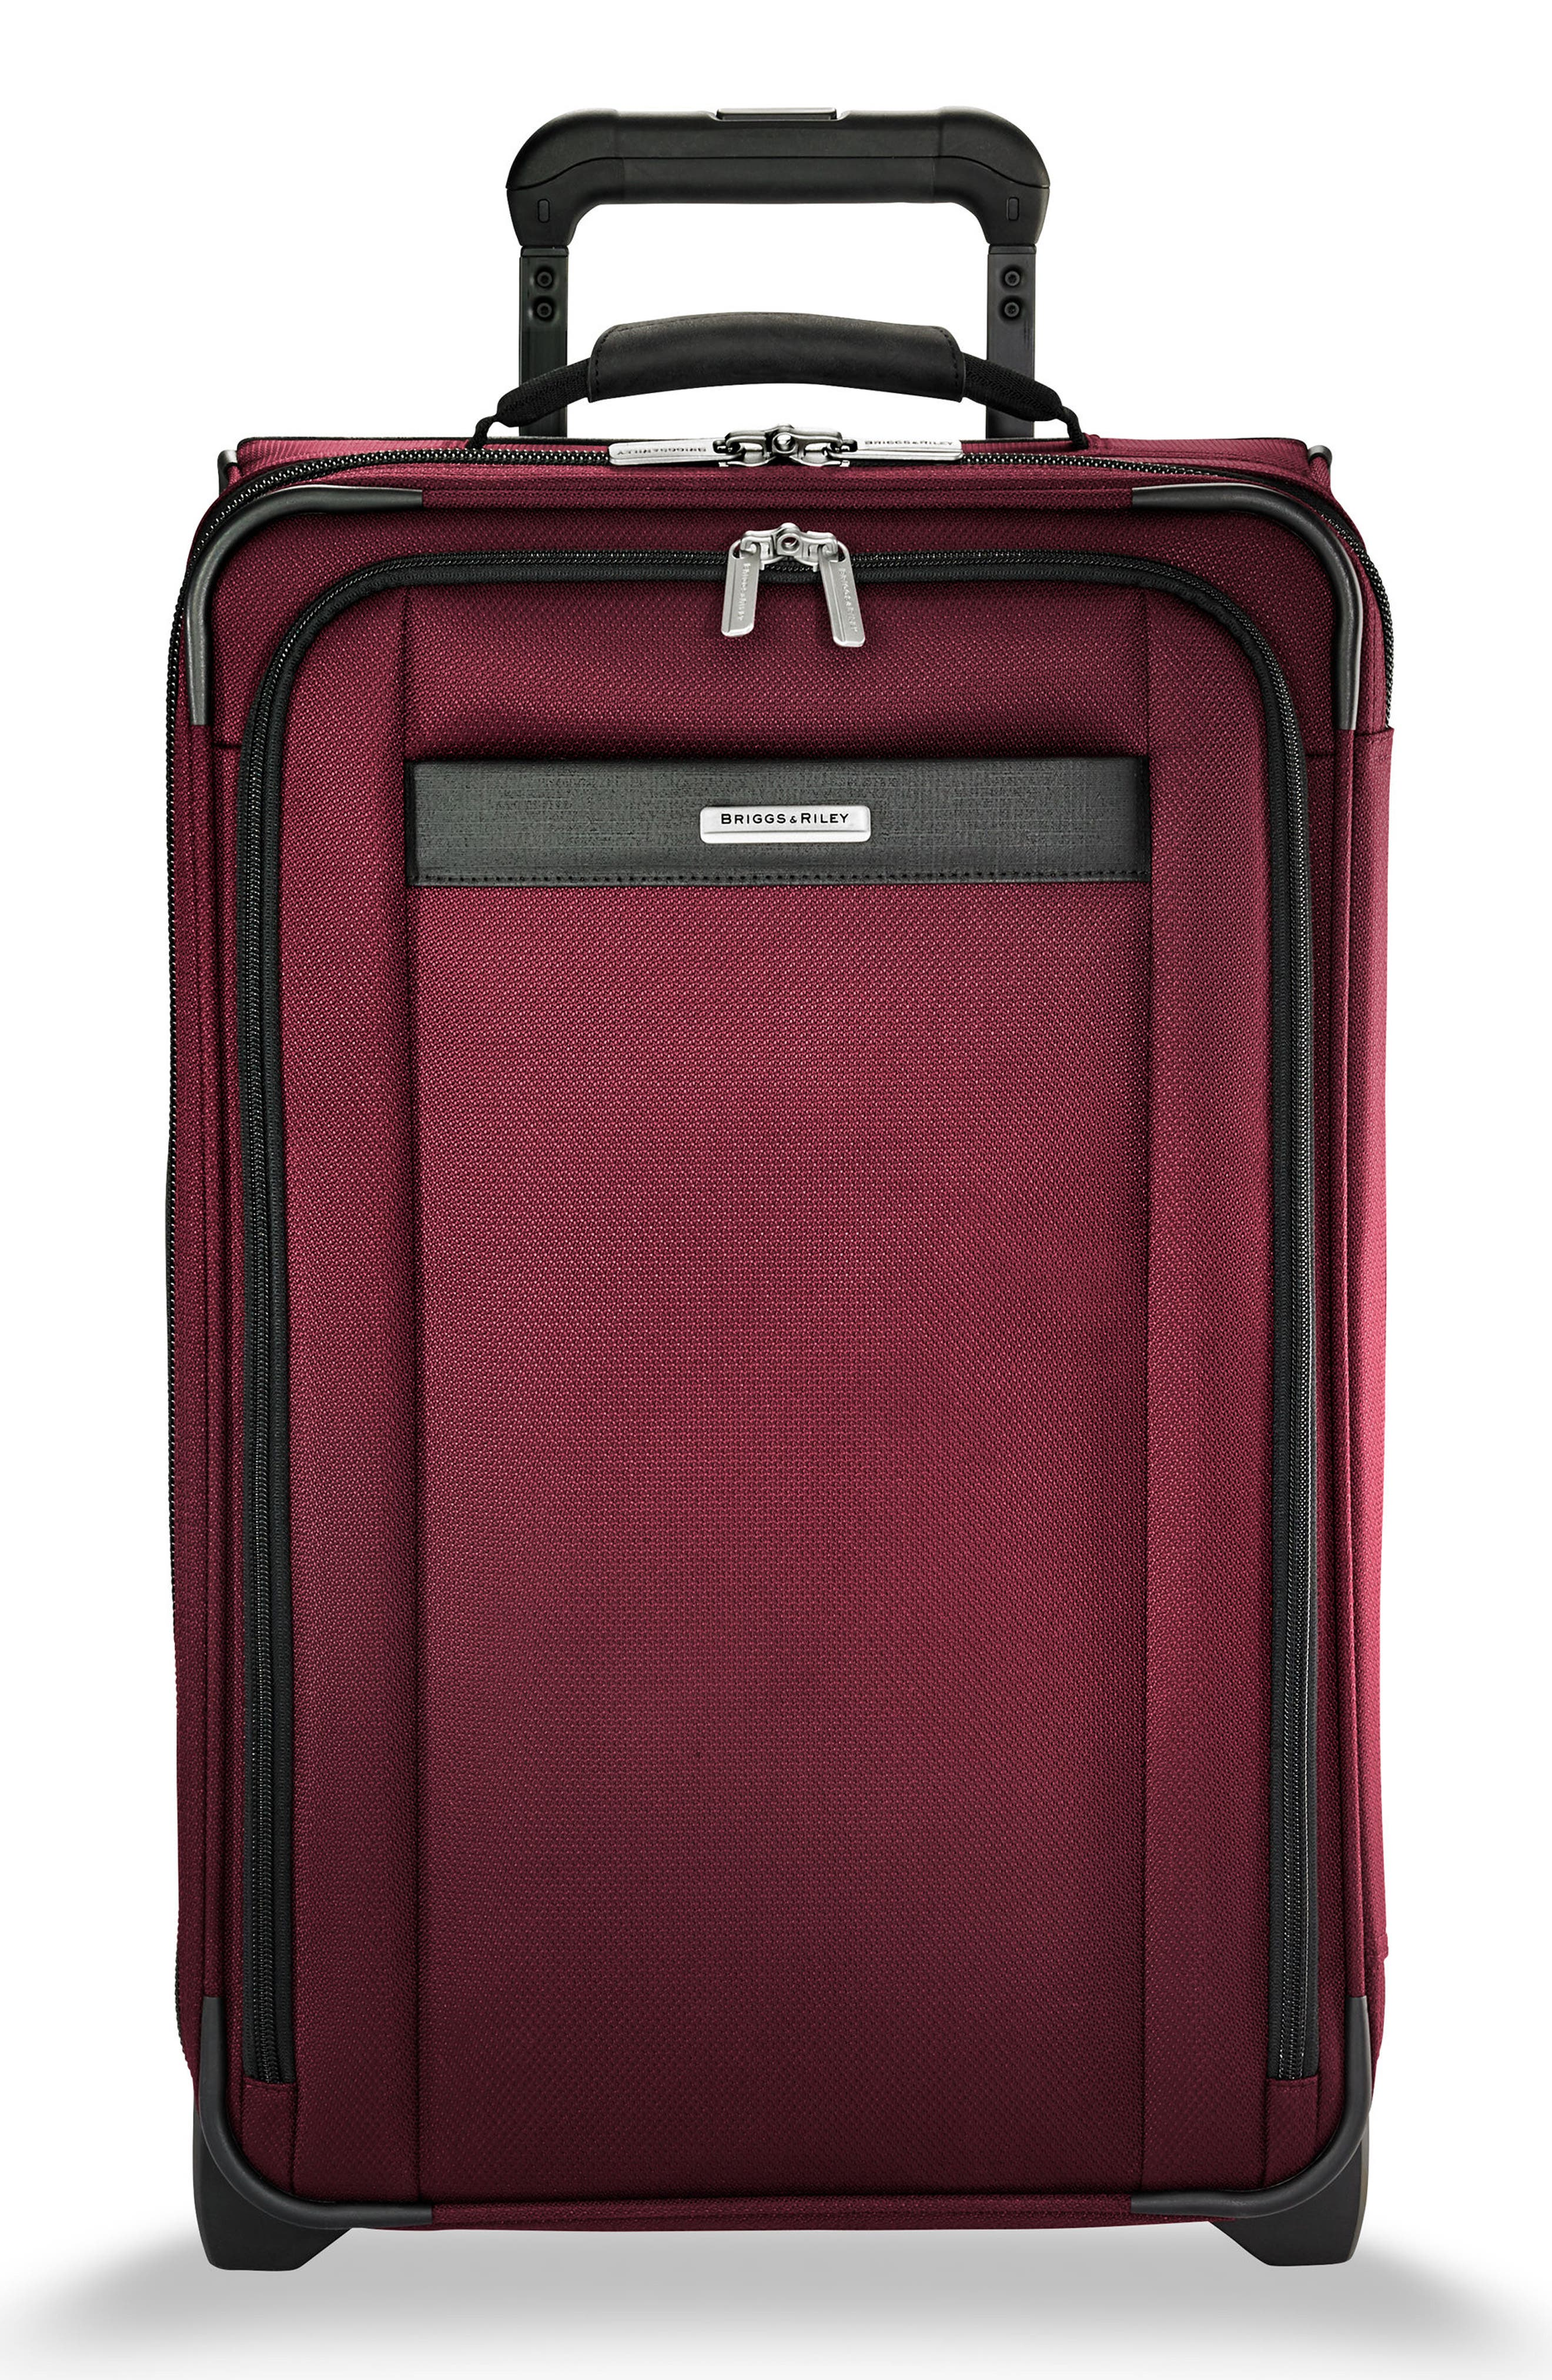 Alternate Image 1 Selected - Briggs & Riley Transcend 400 22-Inch Wheeled Carry-On